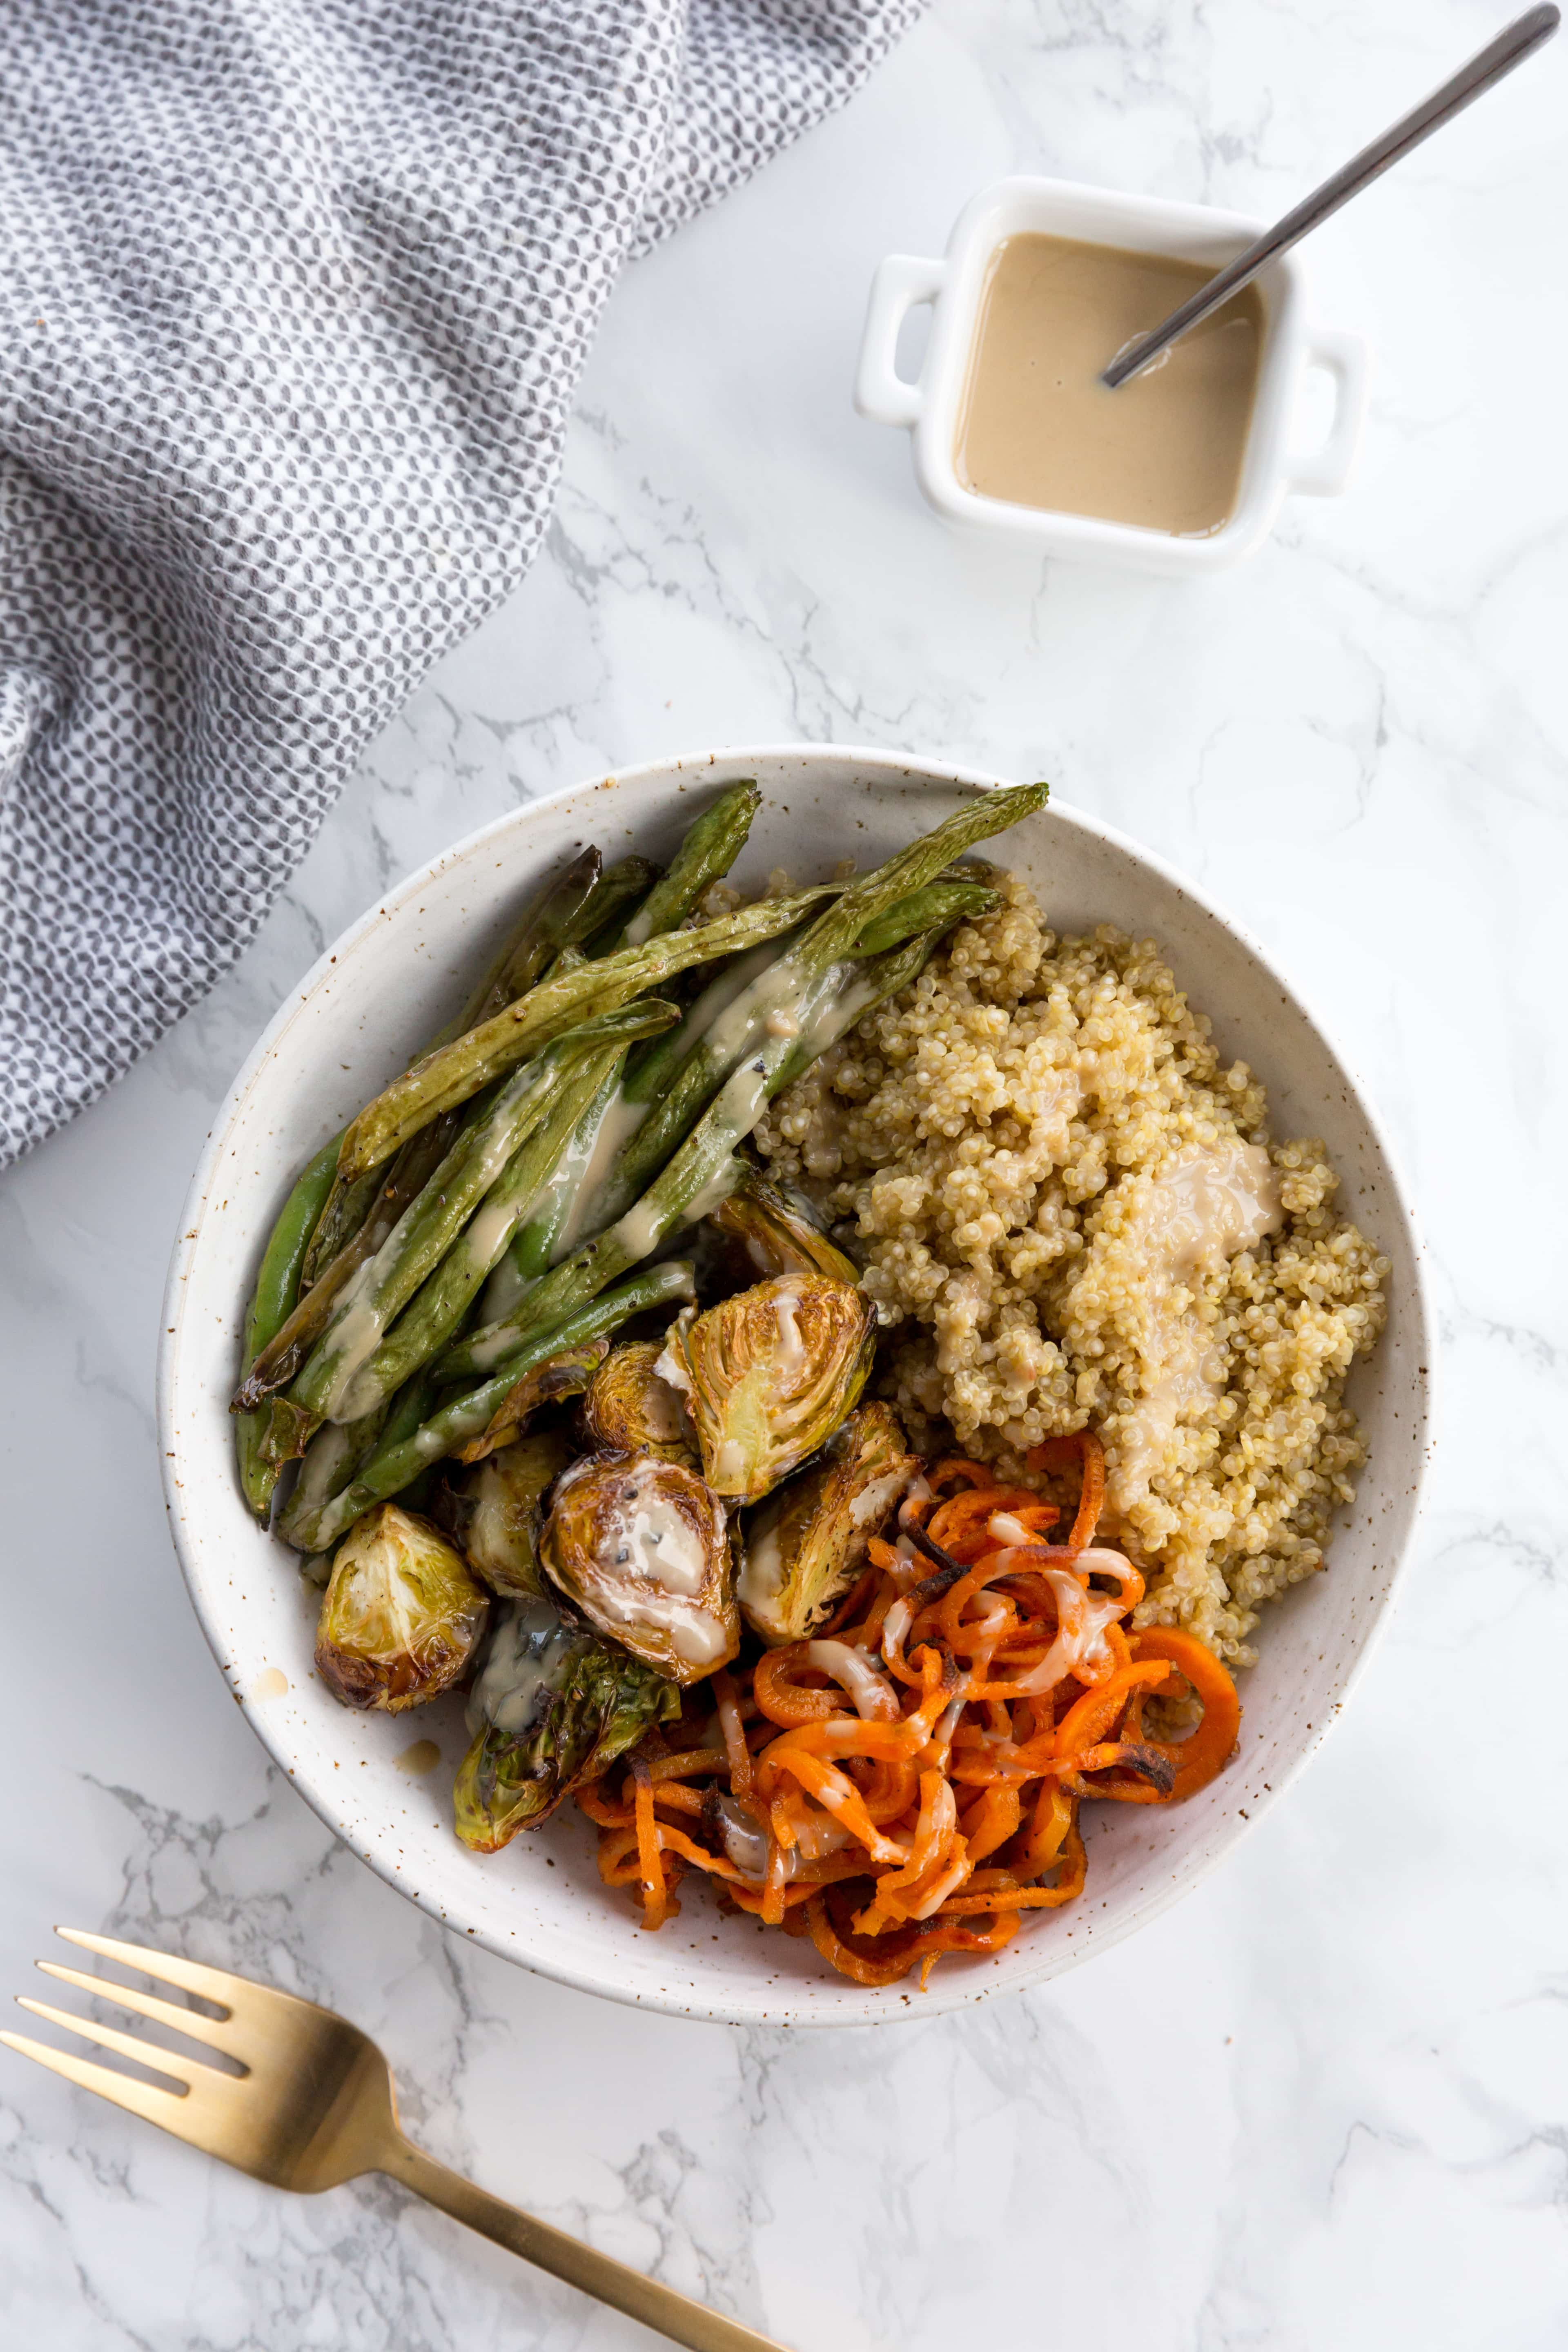 Vegetarian Roasted and Spiralized Veggie Bowls